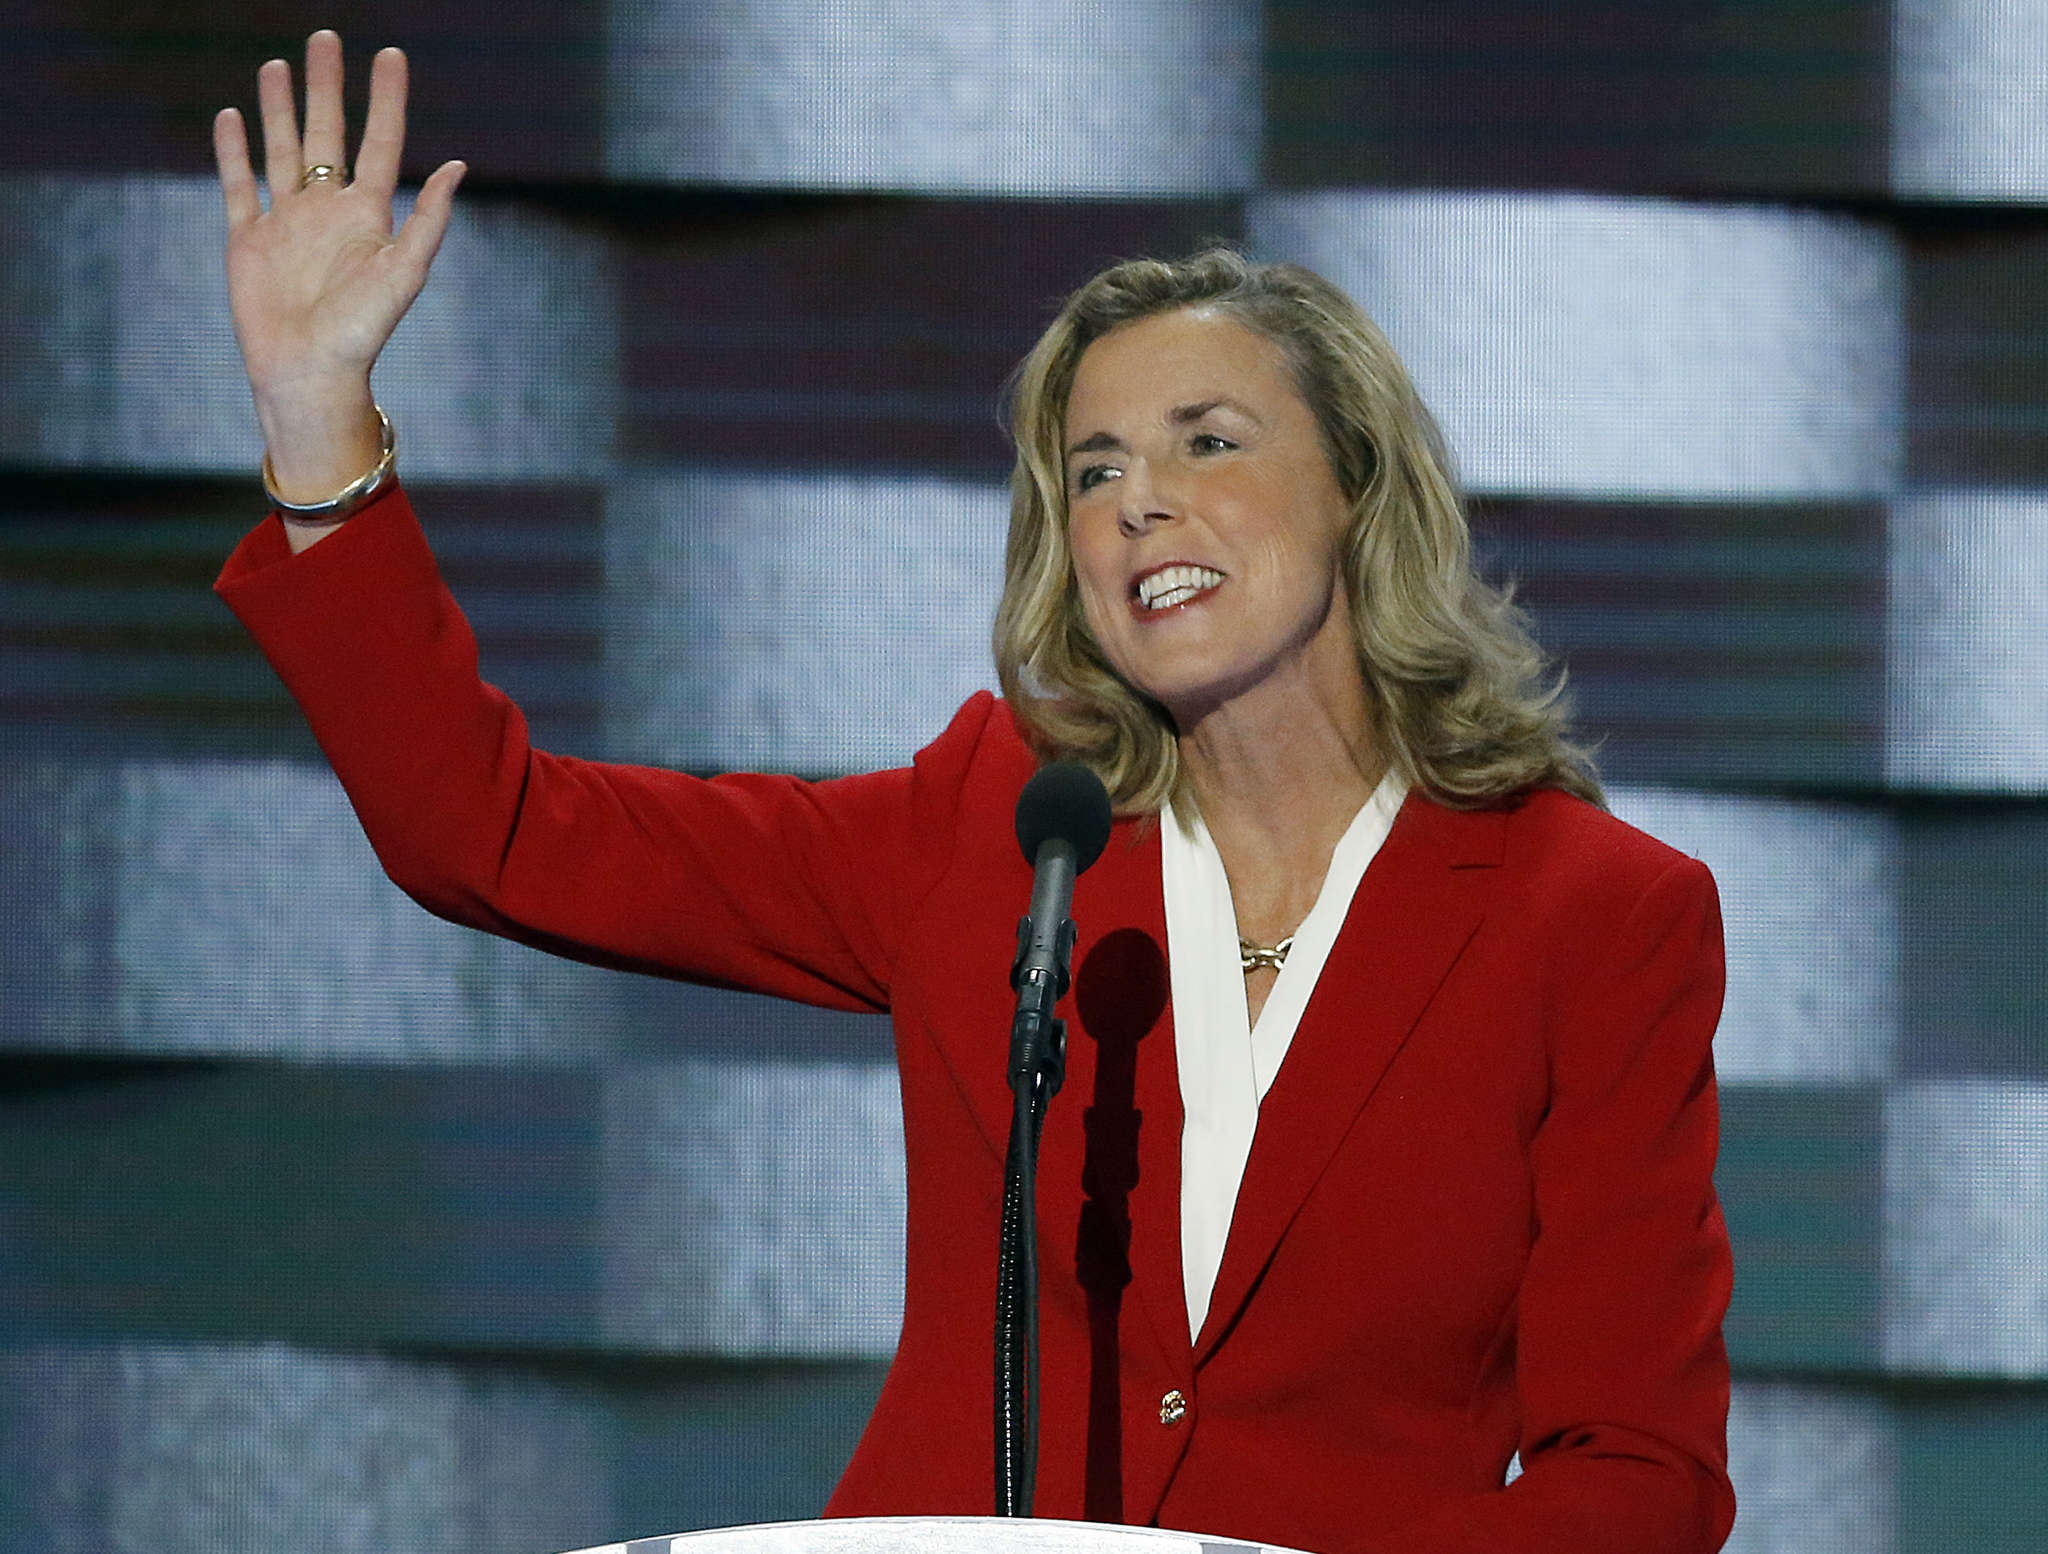 Katie McGinty showed genuine emotion in talking about family members who had cancer. MICHAEL BRYANT / Staff Photographer